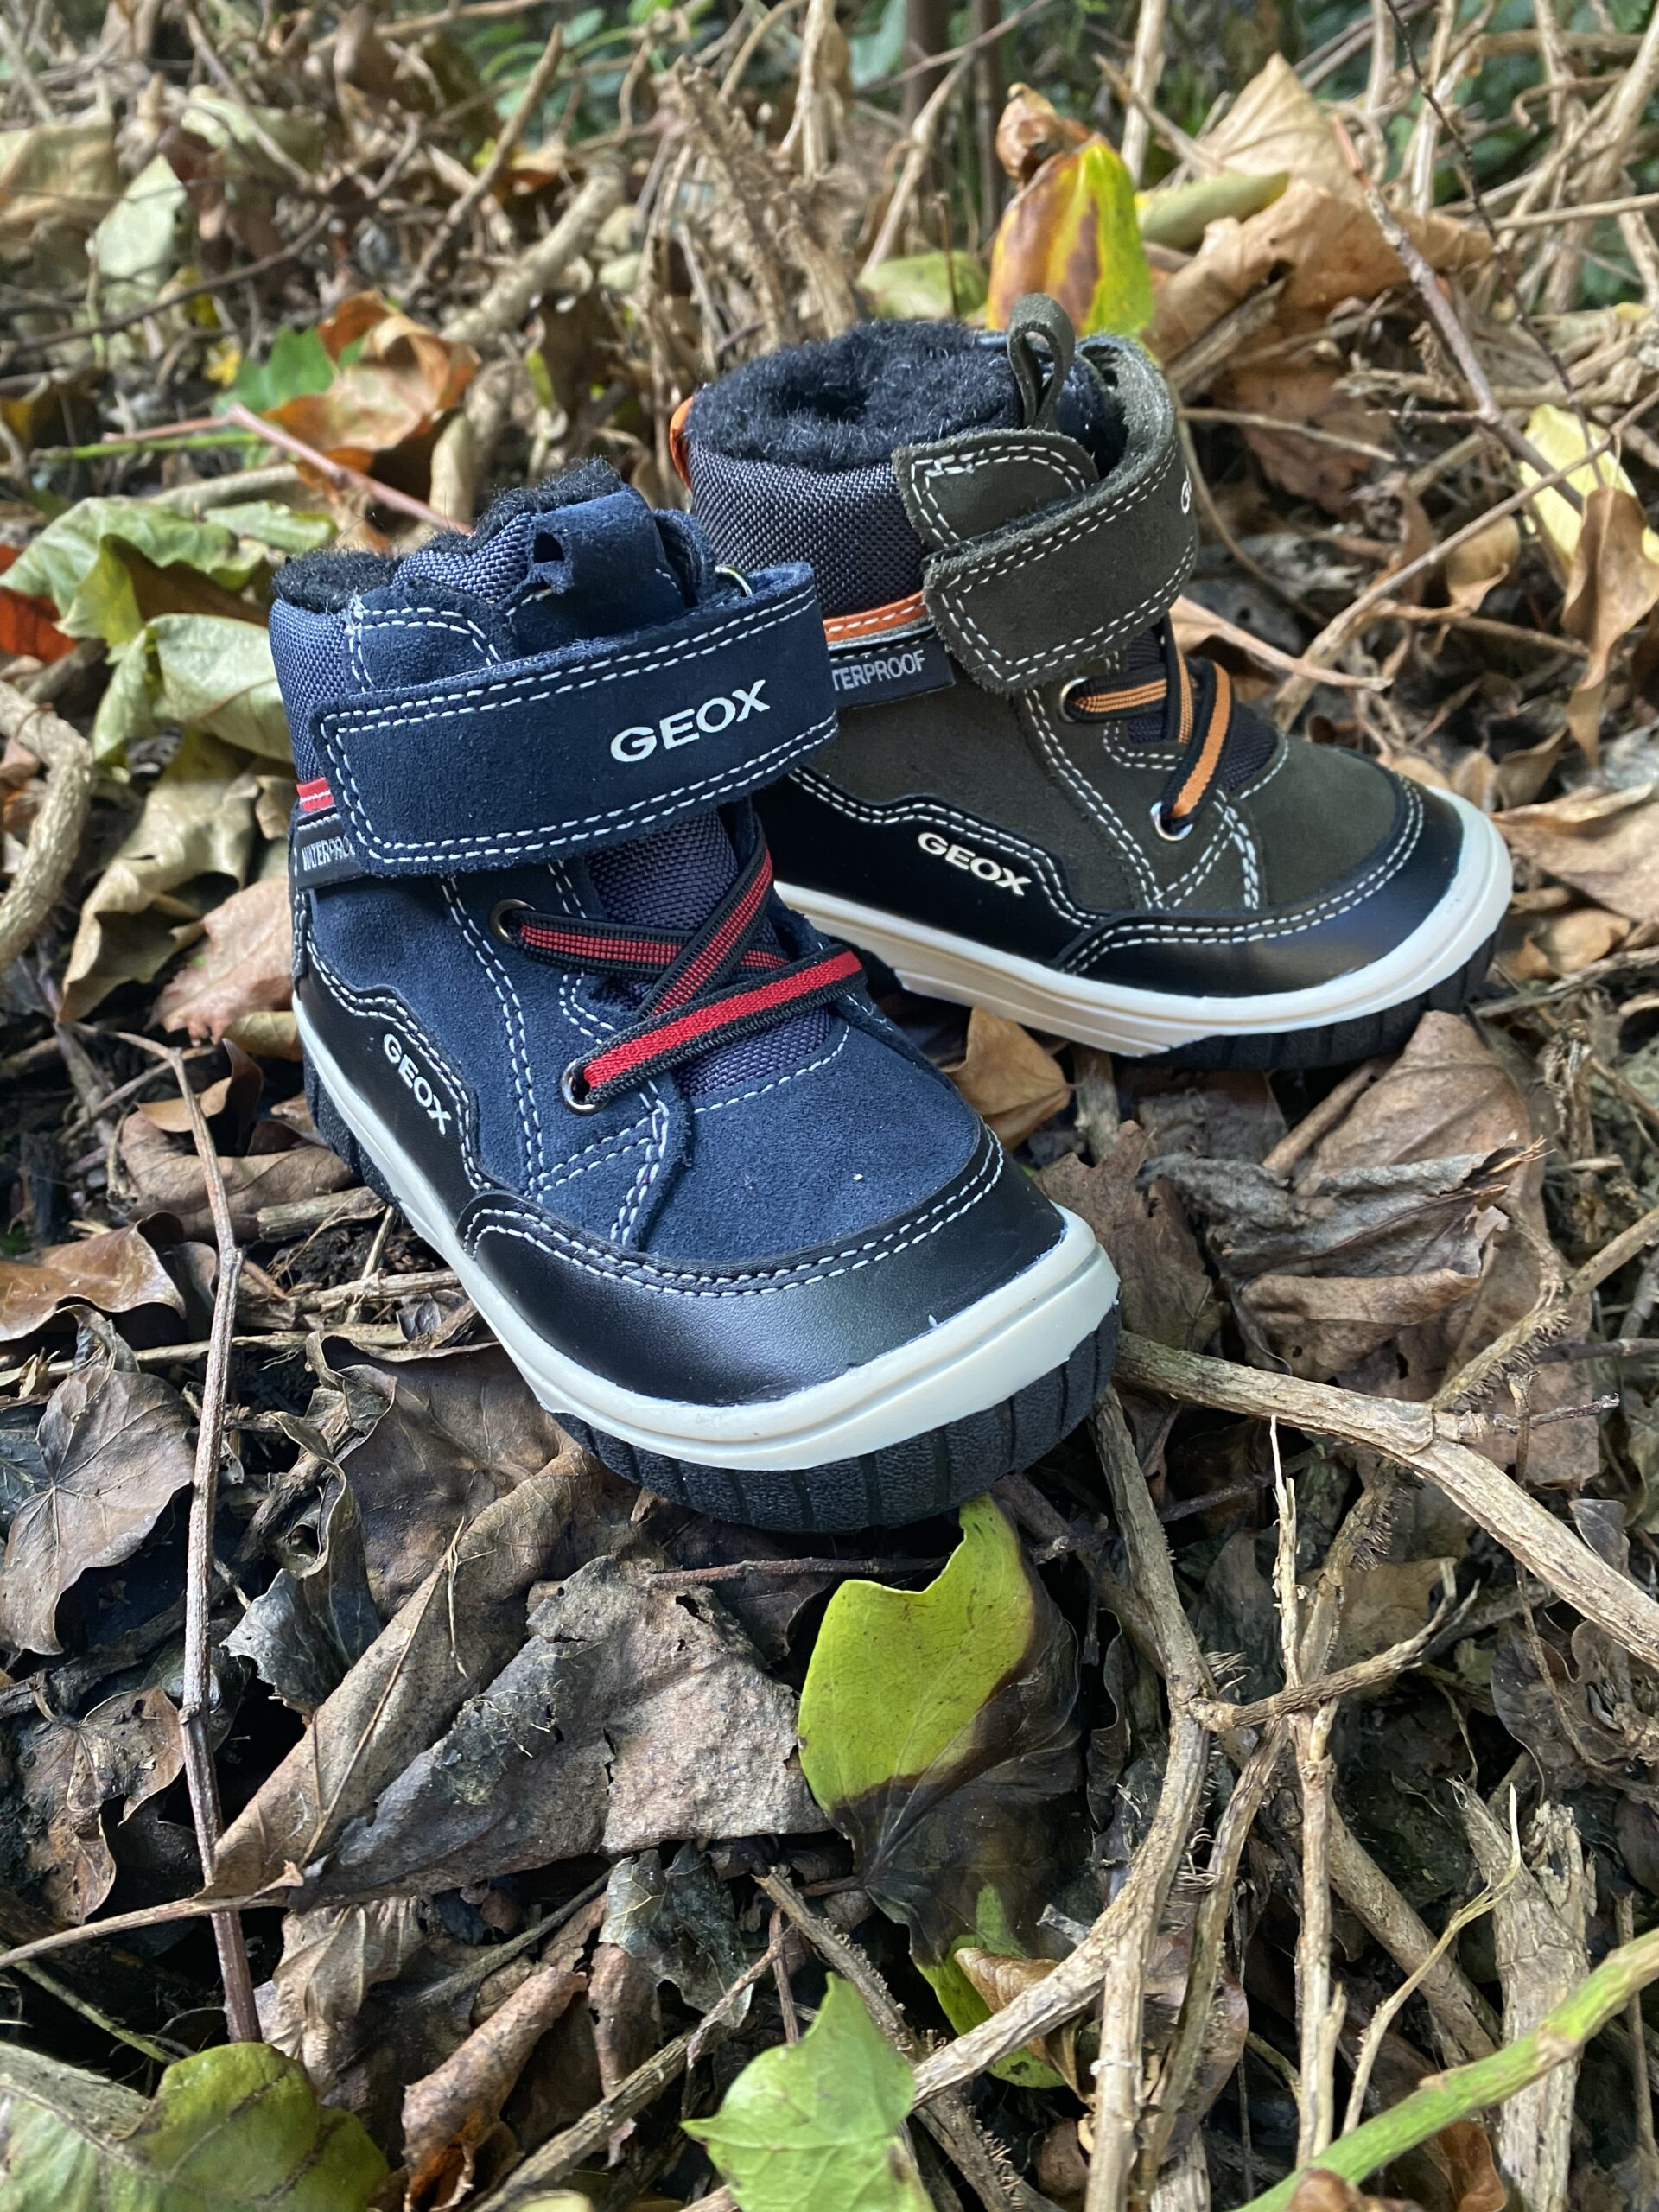 Geox_winter_kids_boots_autumn